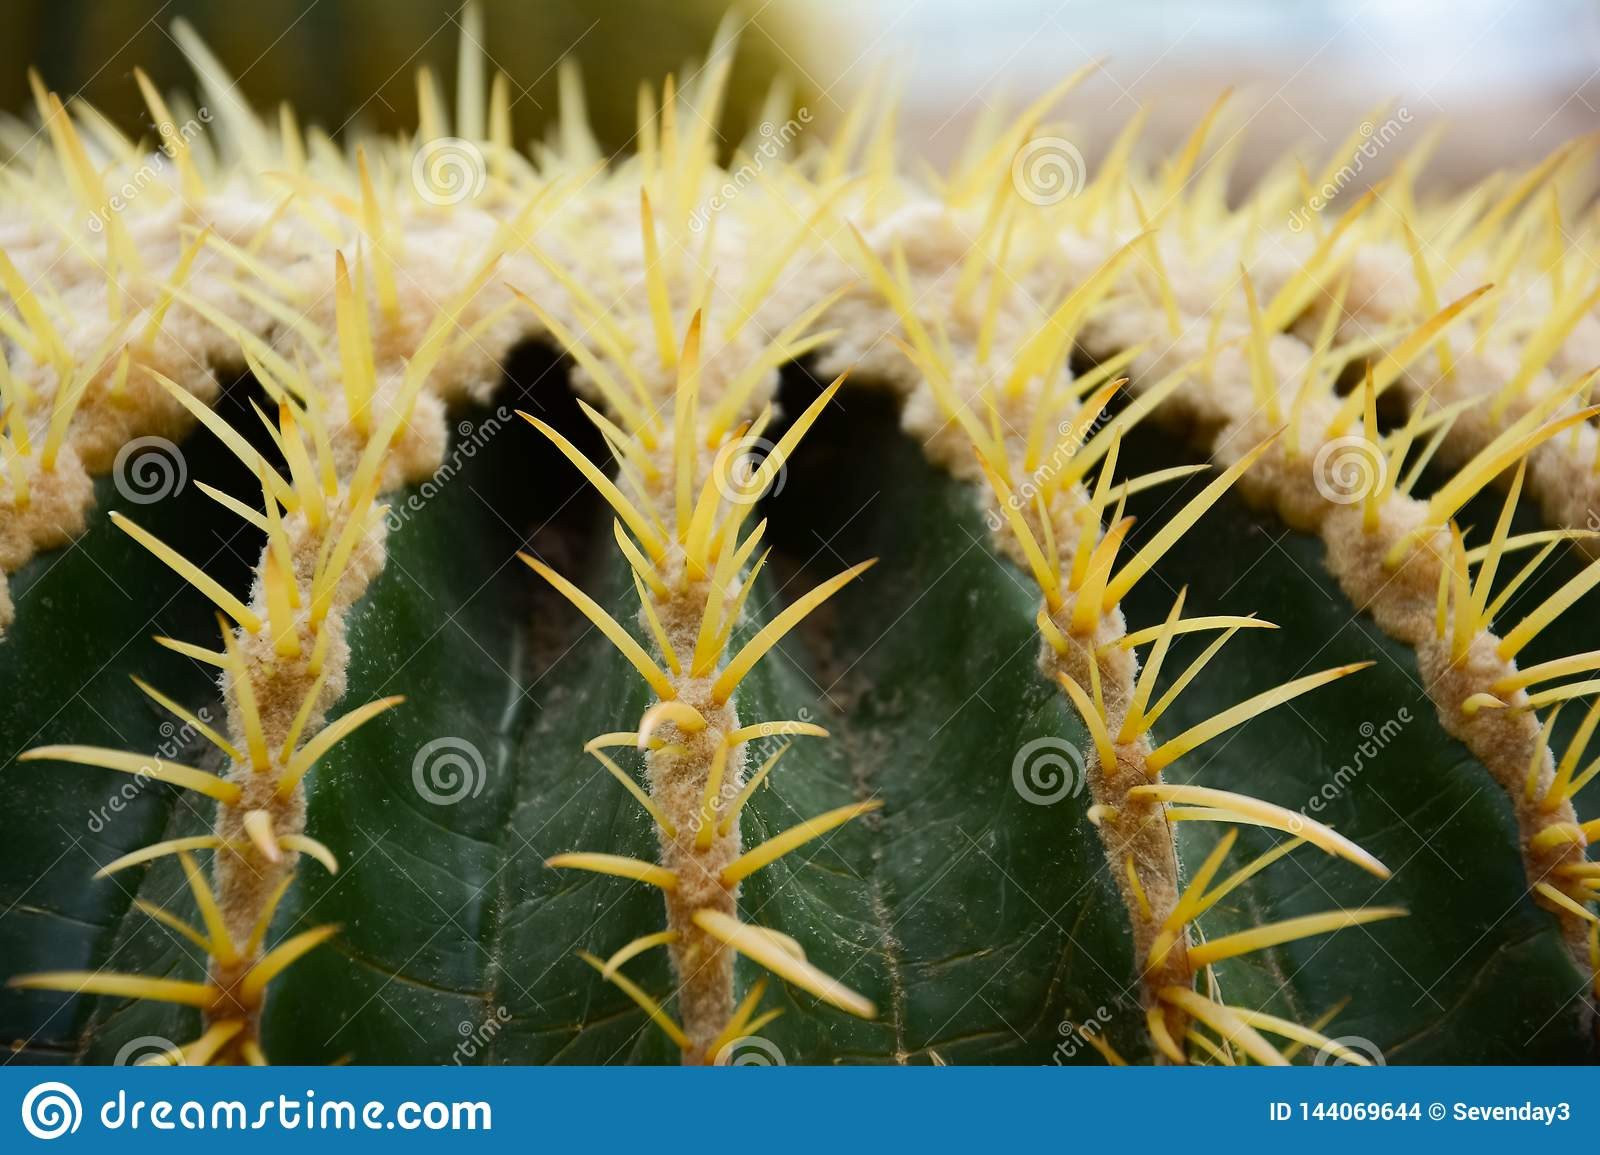 Thorn of Golden barrel cactus or Echinocactus grusonii Hildm, this is the desert tree which were many thorns , its body look like